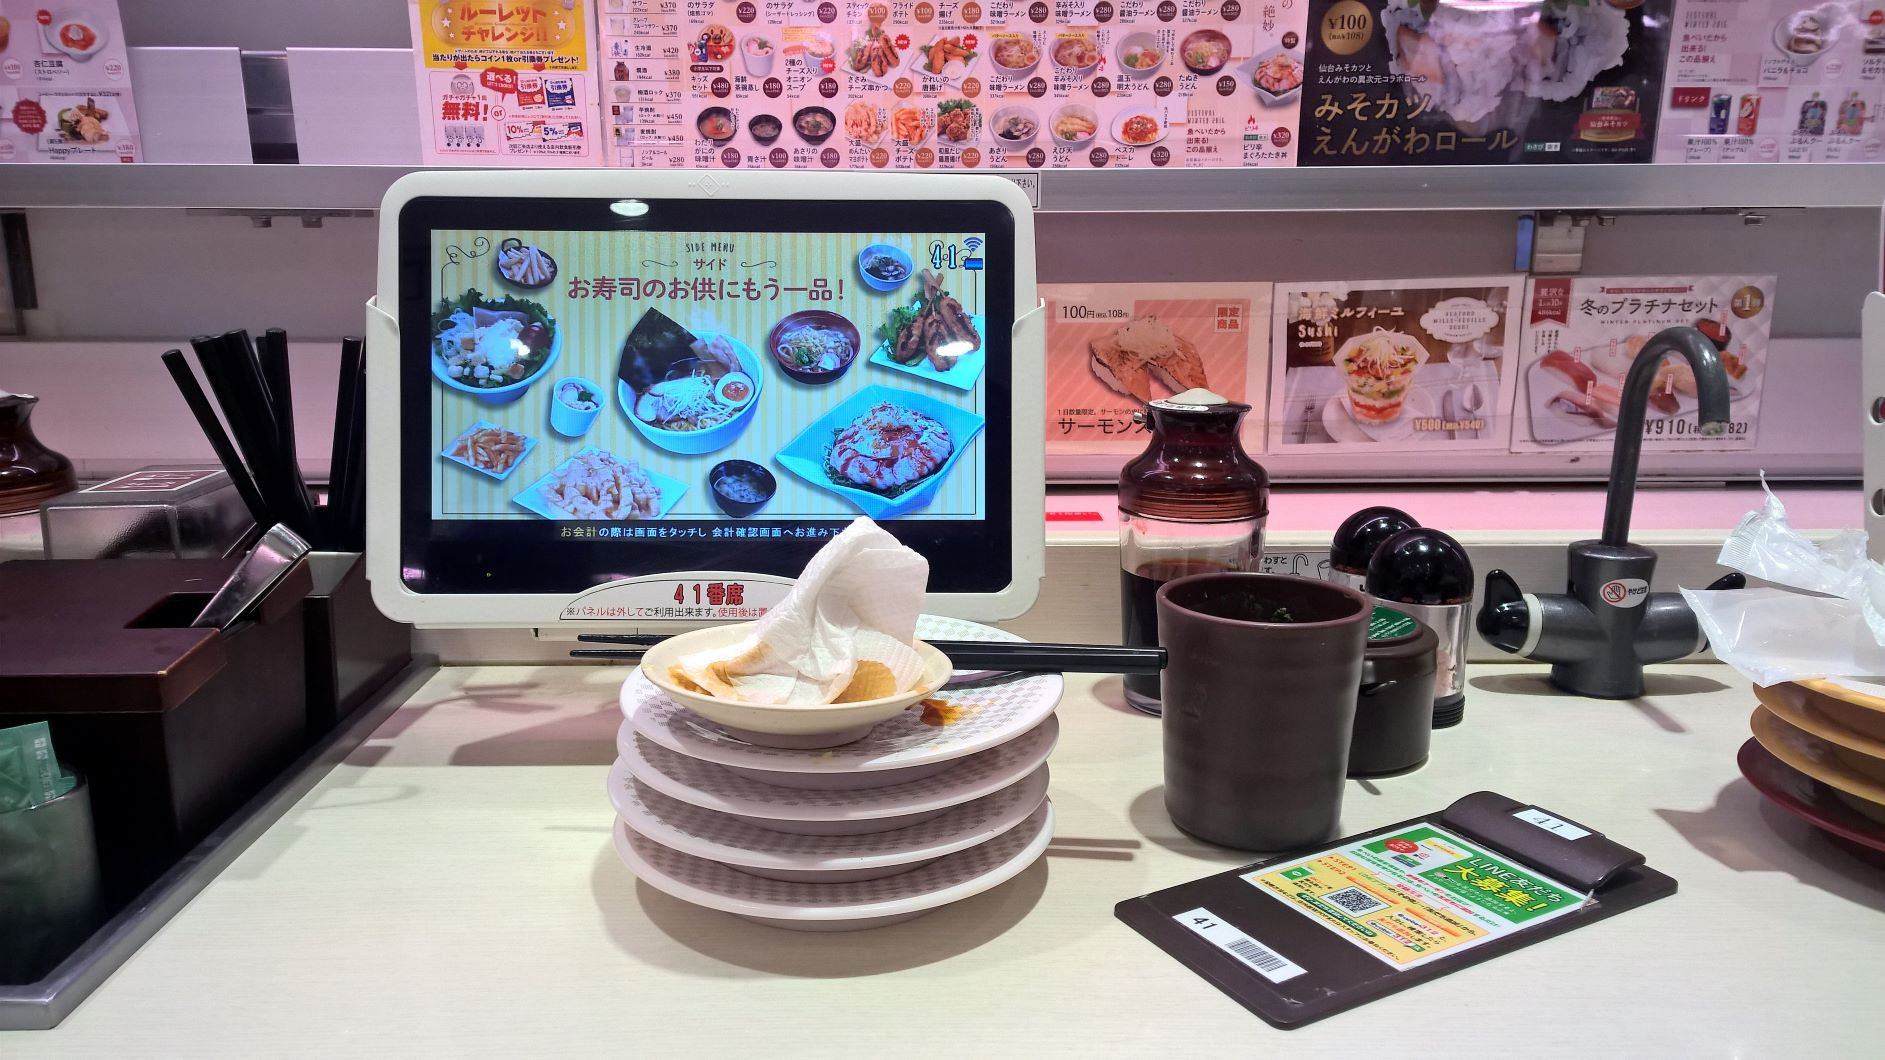 Genki sushi. - Genki Sushi is a Japanese chain of conveyor belt sushi that has been around since the 1990s. We were excited to find one in Shibuya, Tokyo, and went every single day. These restaurants are quintessential conveyor belt sushi: using a small computer you browse the menu and put in orders. These orders are delivered to you within minutes, on a small dish that comes out via conveyor belt. None of the dishes are expensive (maximum 5 USD), making it endlessly fun to sample various items from classic sushi rolls to noodle dishes.